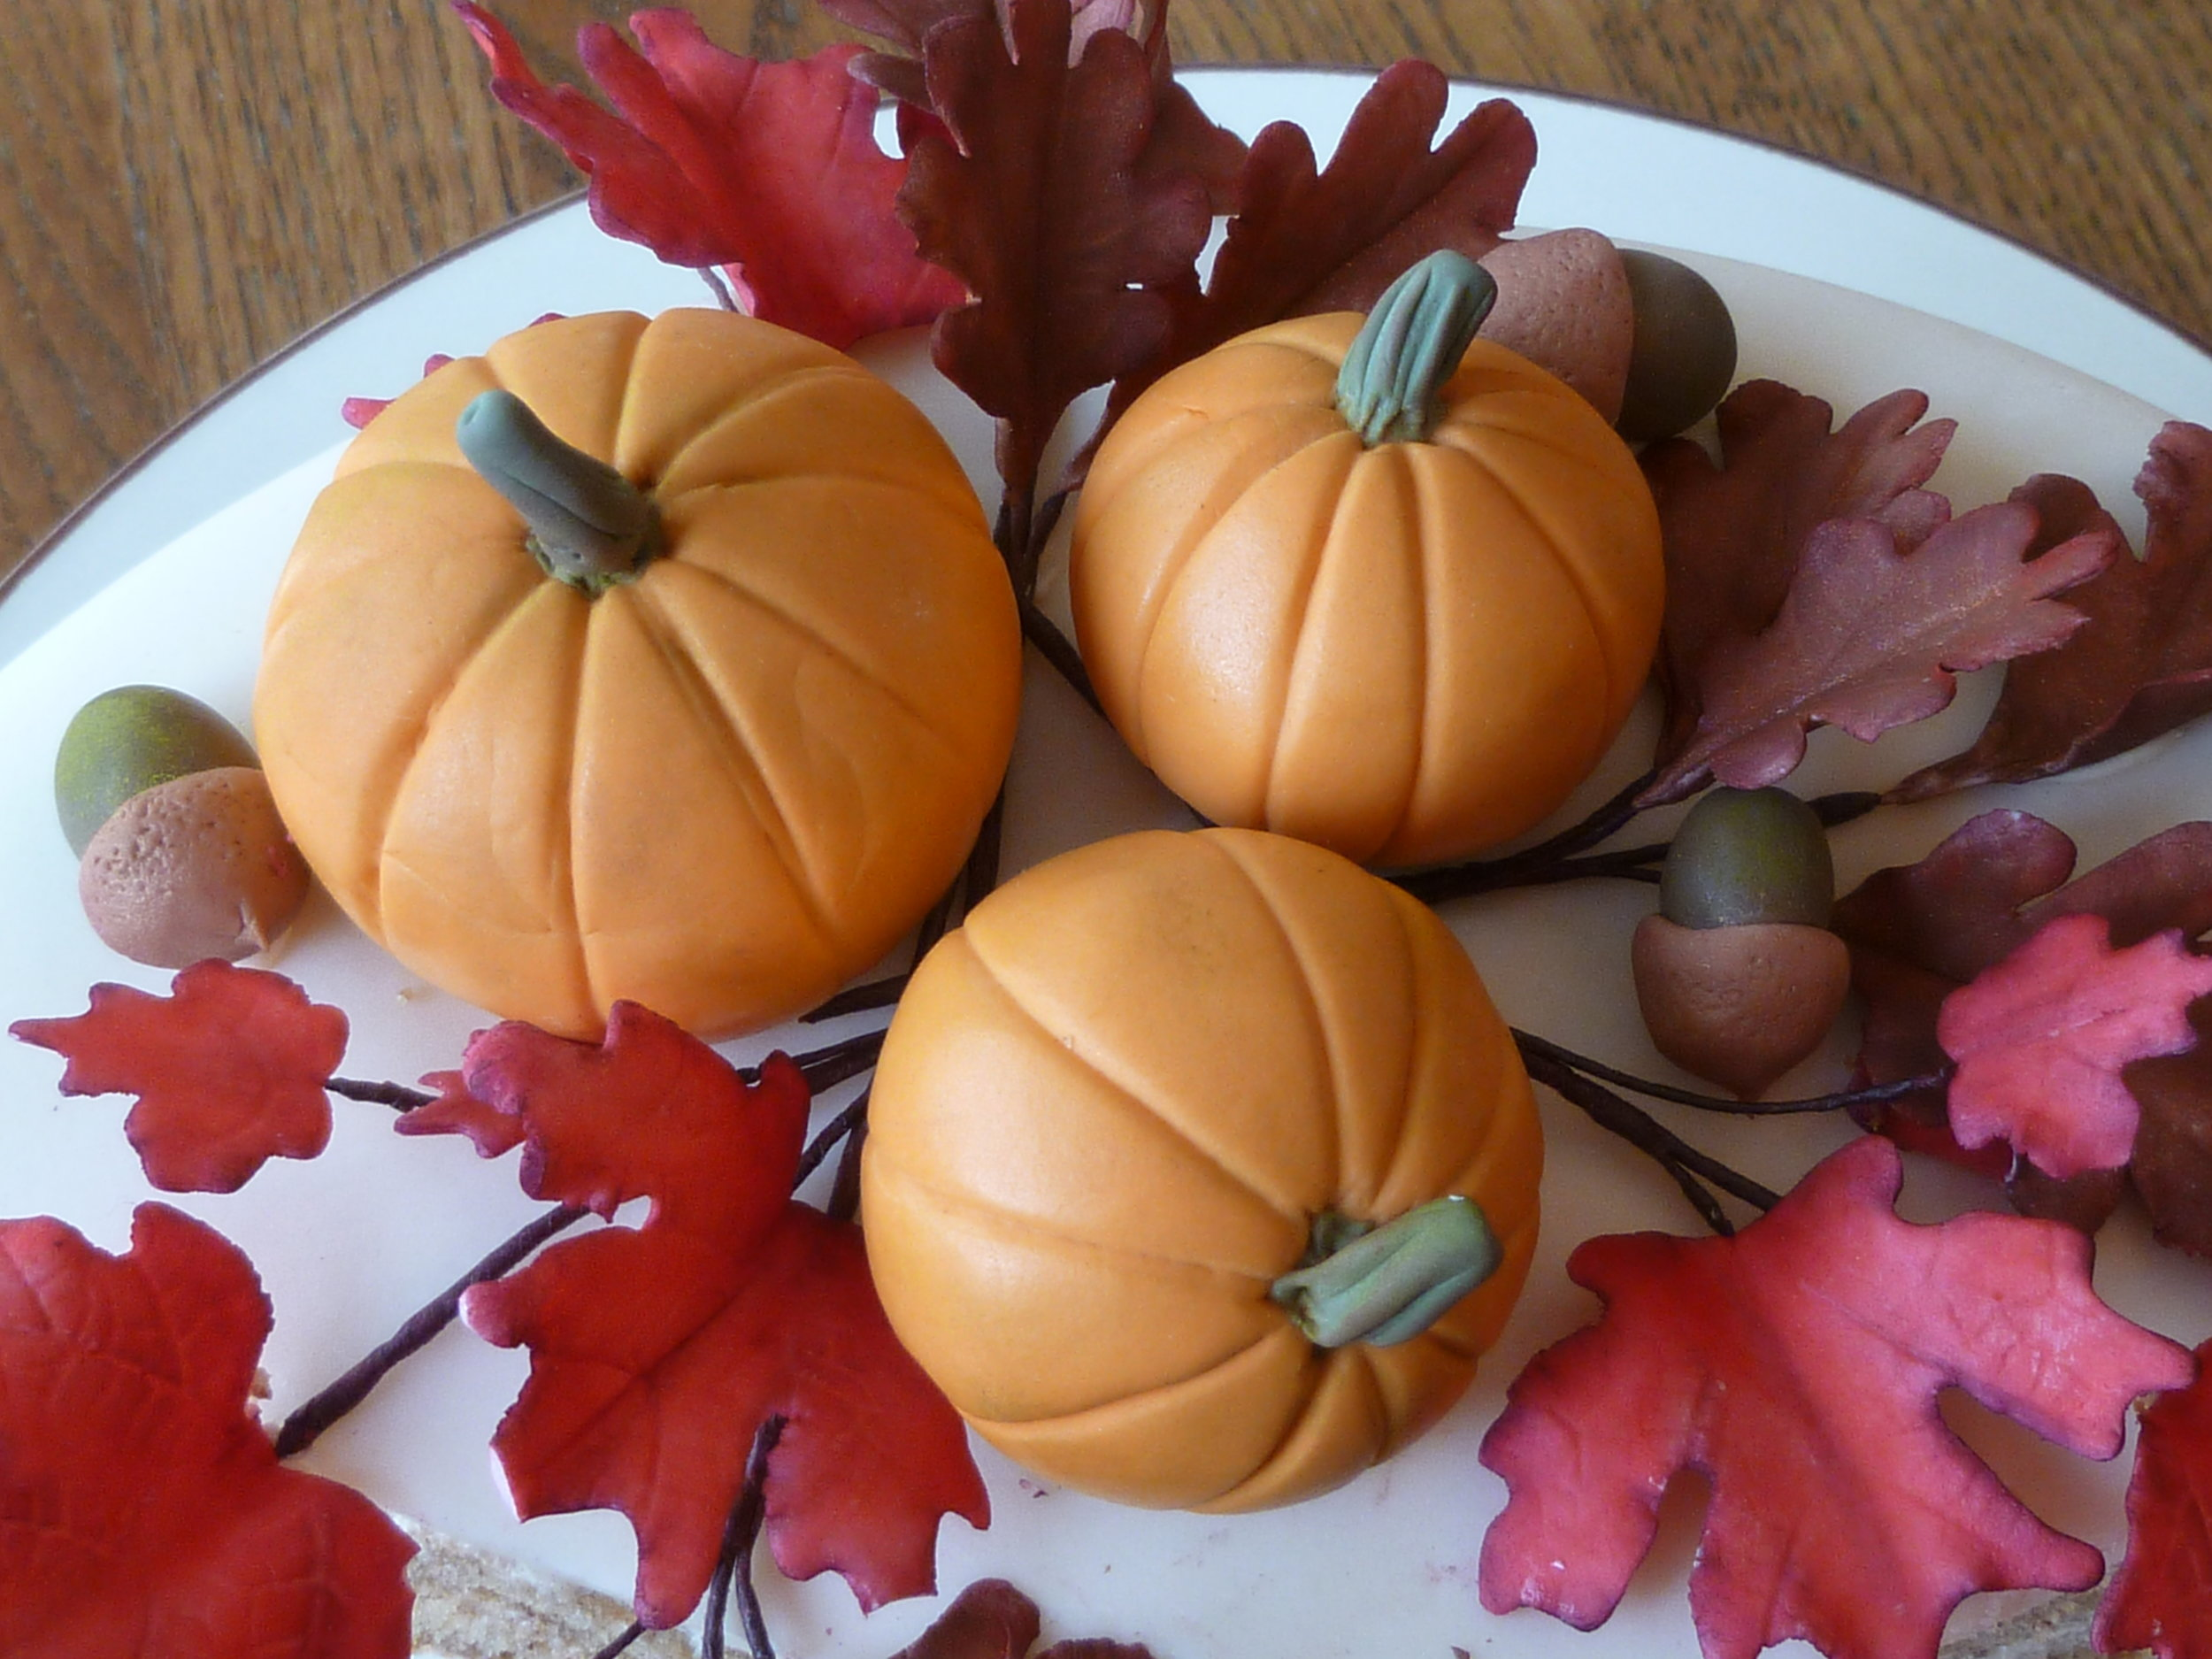 Pumpkins, acorns, and foliage in sugar